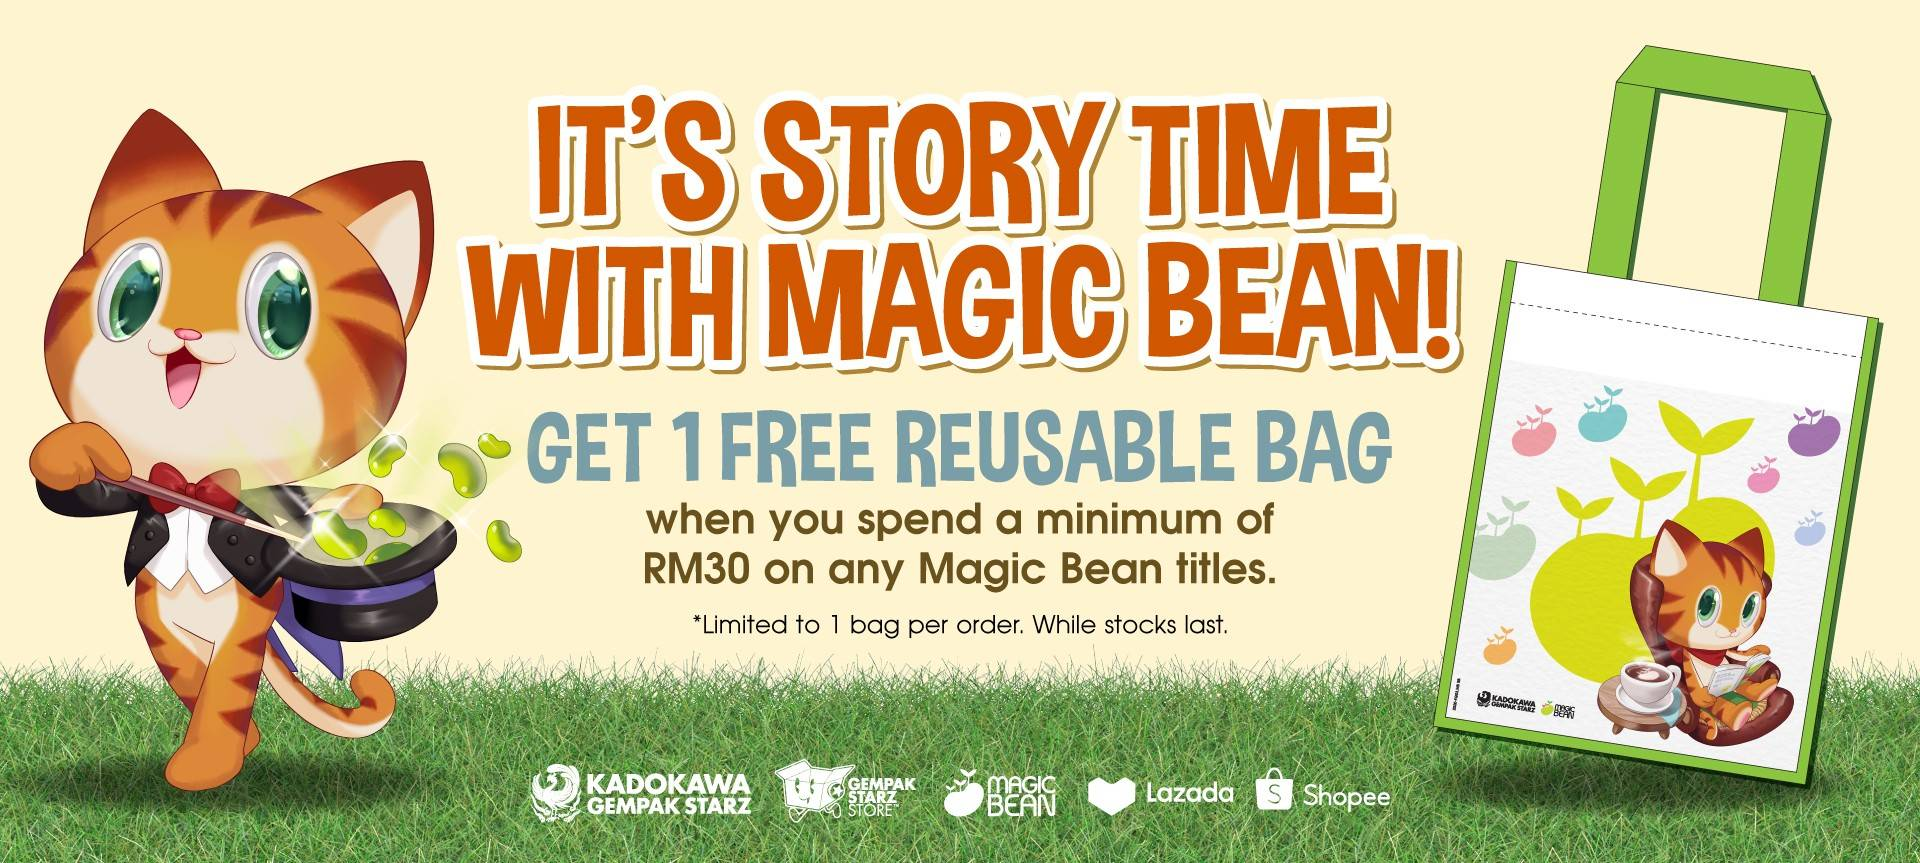 Free Reusable Bag with min RM30  MagicBean Purchase